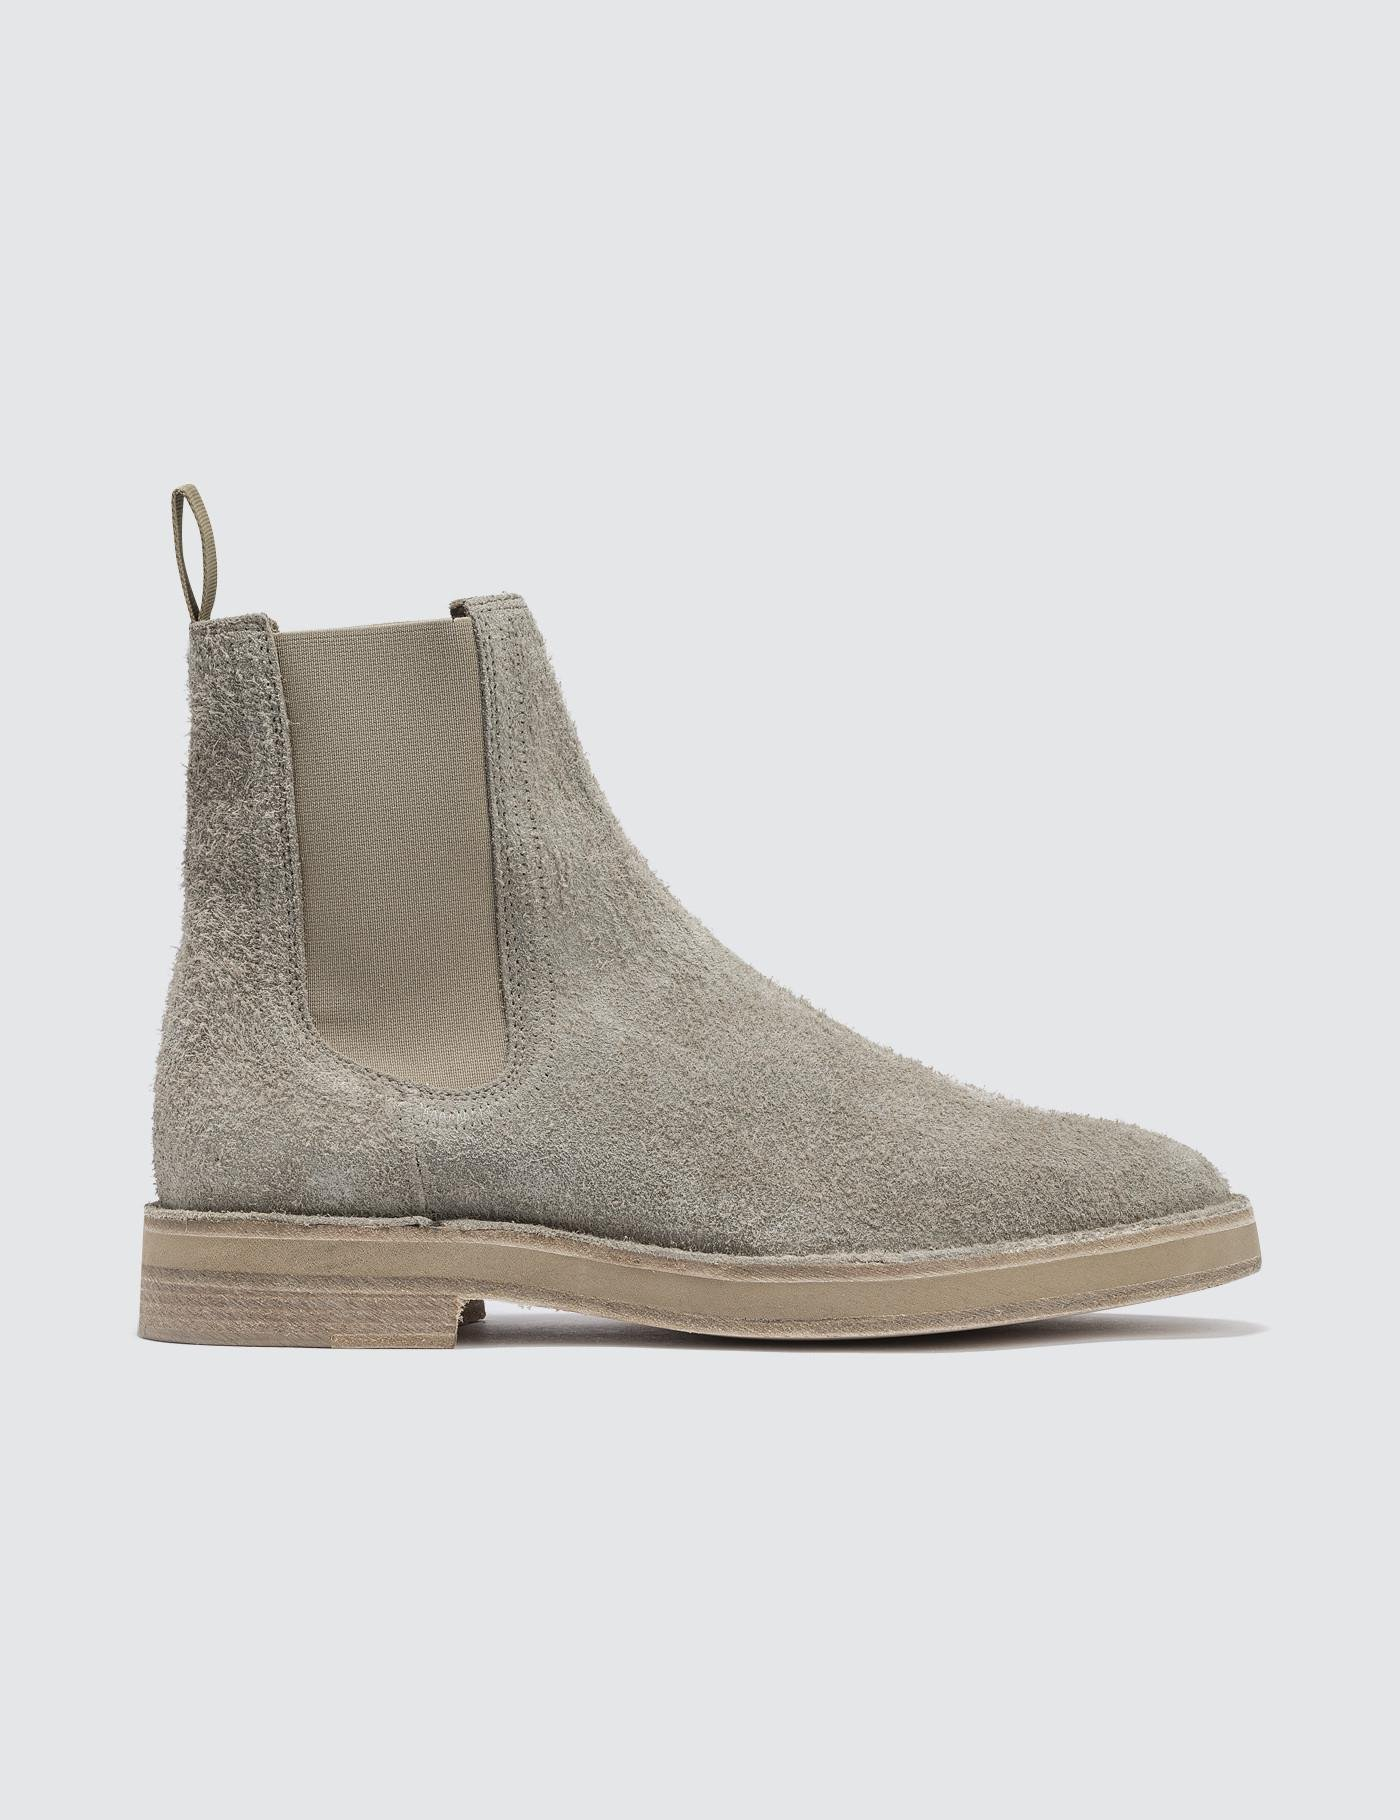 57408cd4a Gallery. Previously sold at  HBX · Men s Chelsea Boots